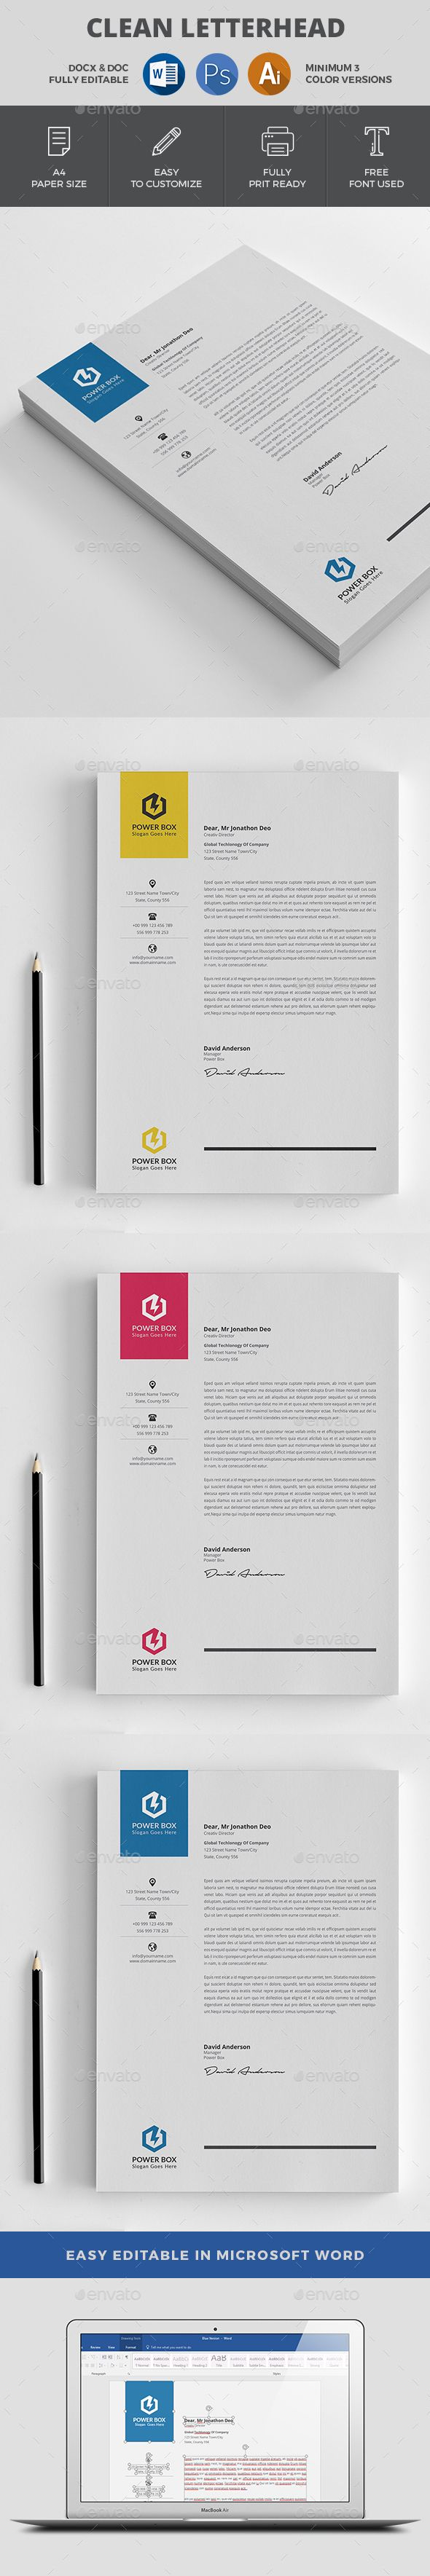 Best 25 Letterhead template ideas on Pinterest Letterhead